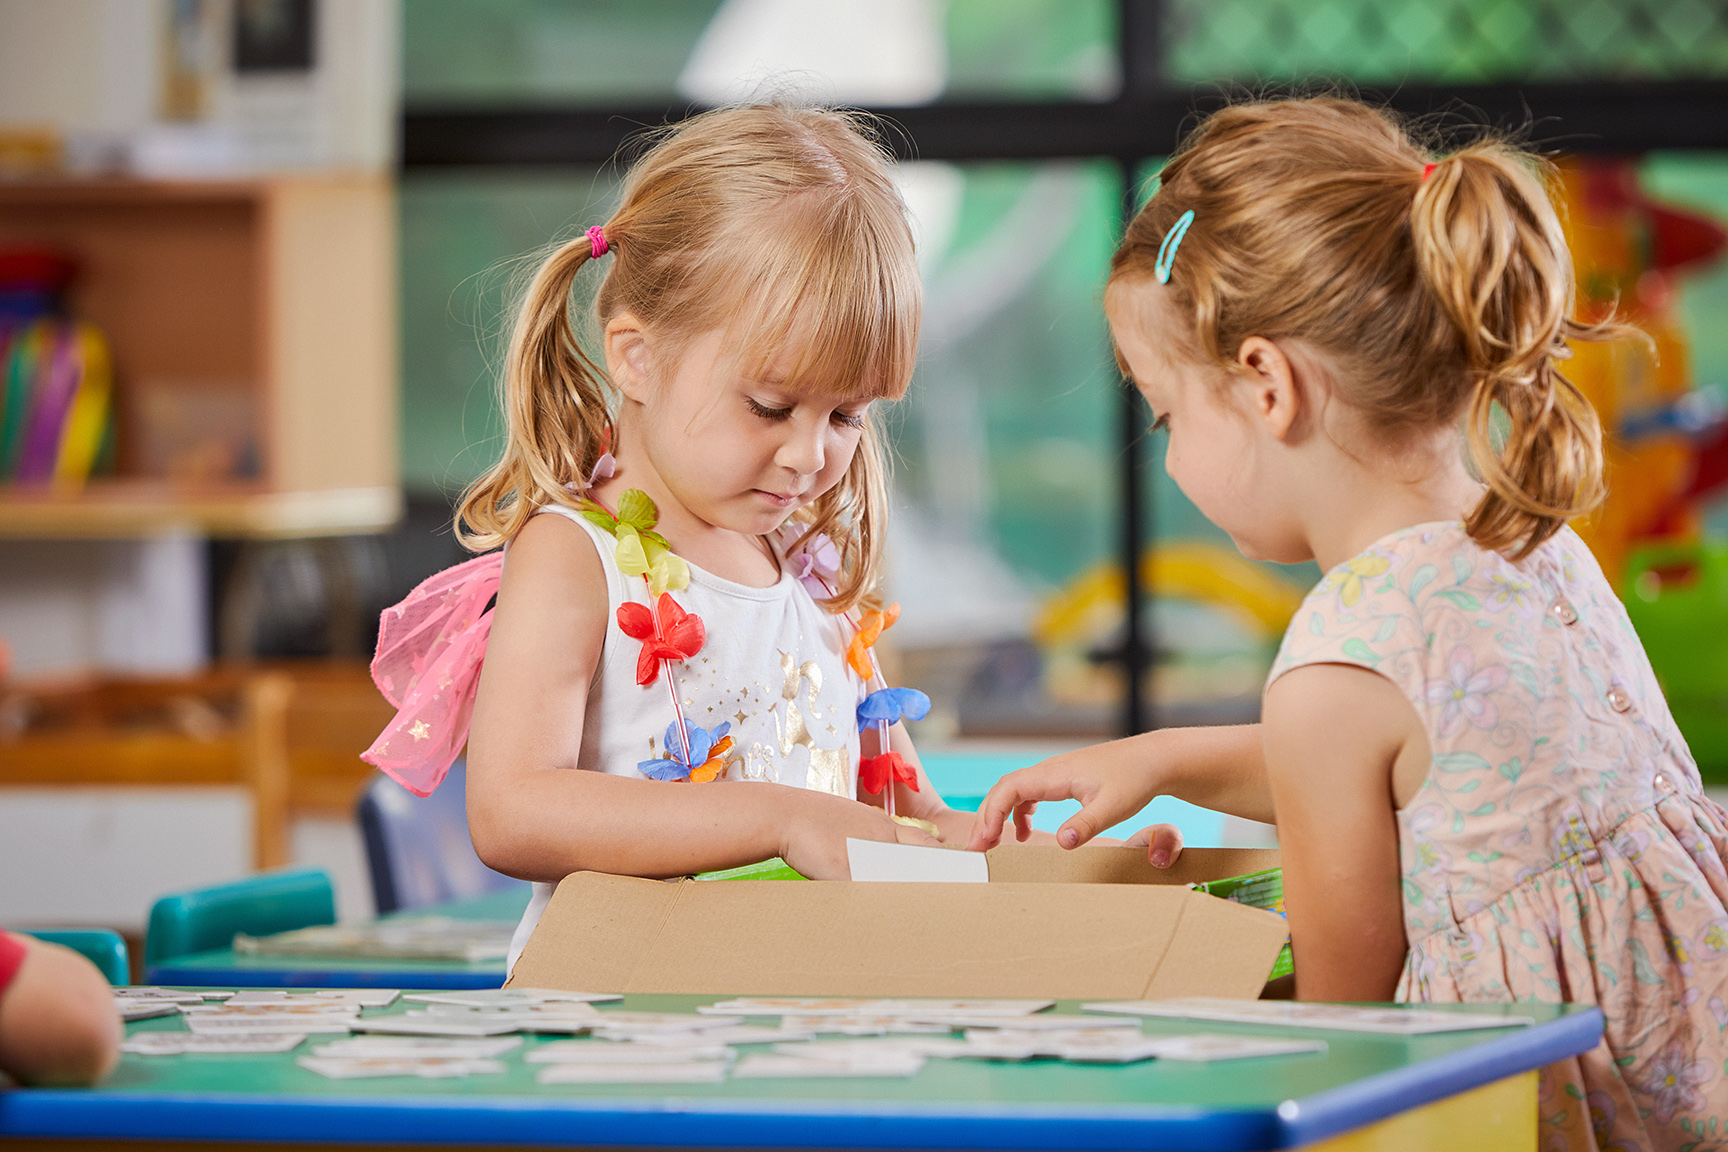 2 children in classroom learning about puzzles